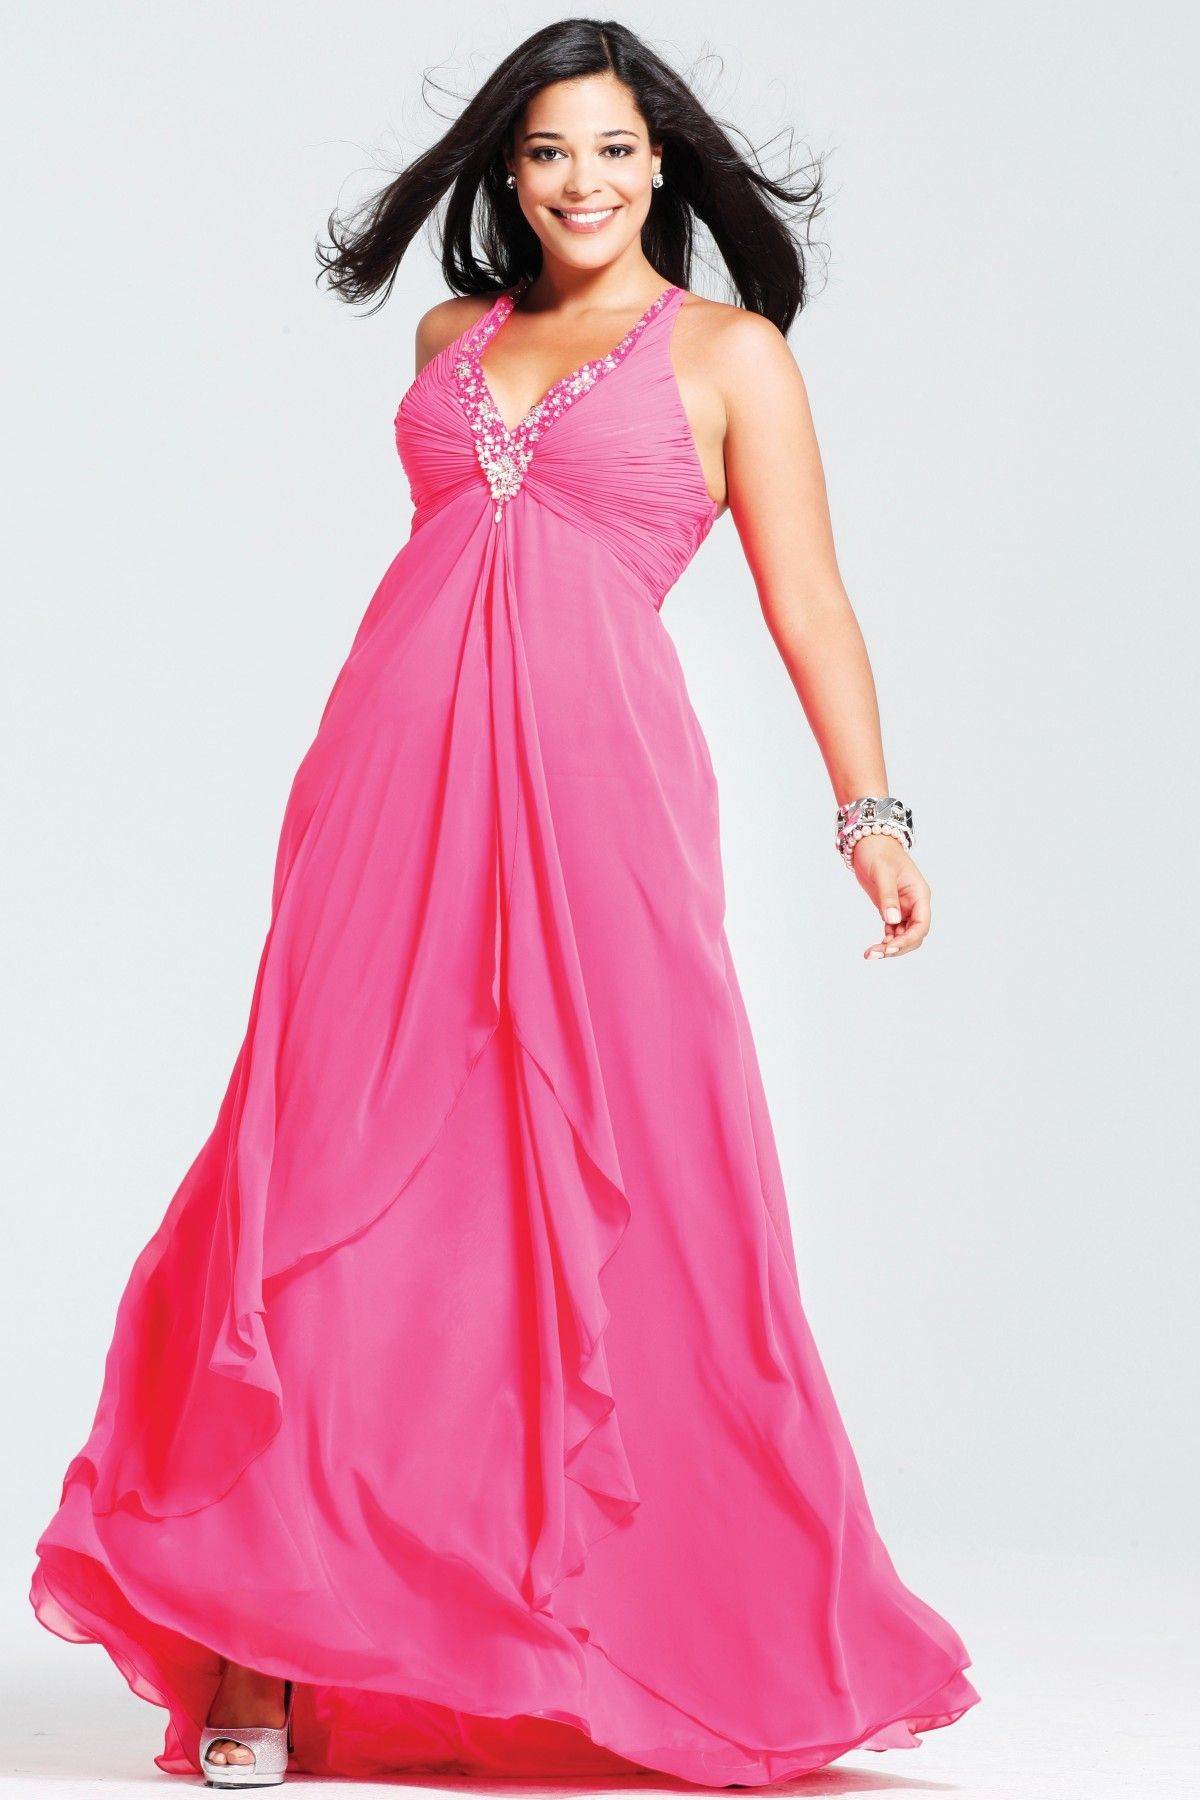 Plus Size Prom Dresses, 2012 Beautiful Empire Halter Top Neck Tea ...